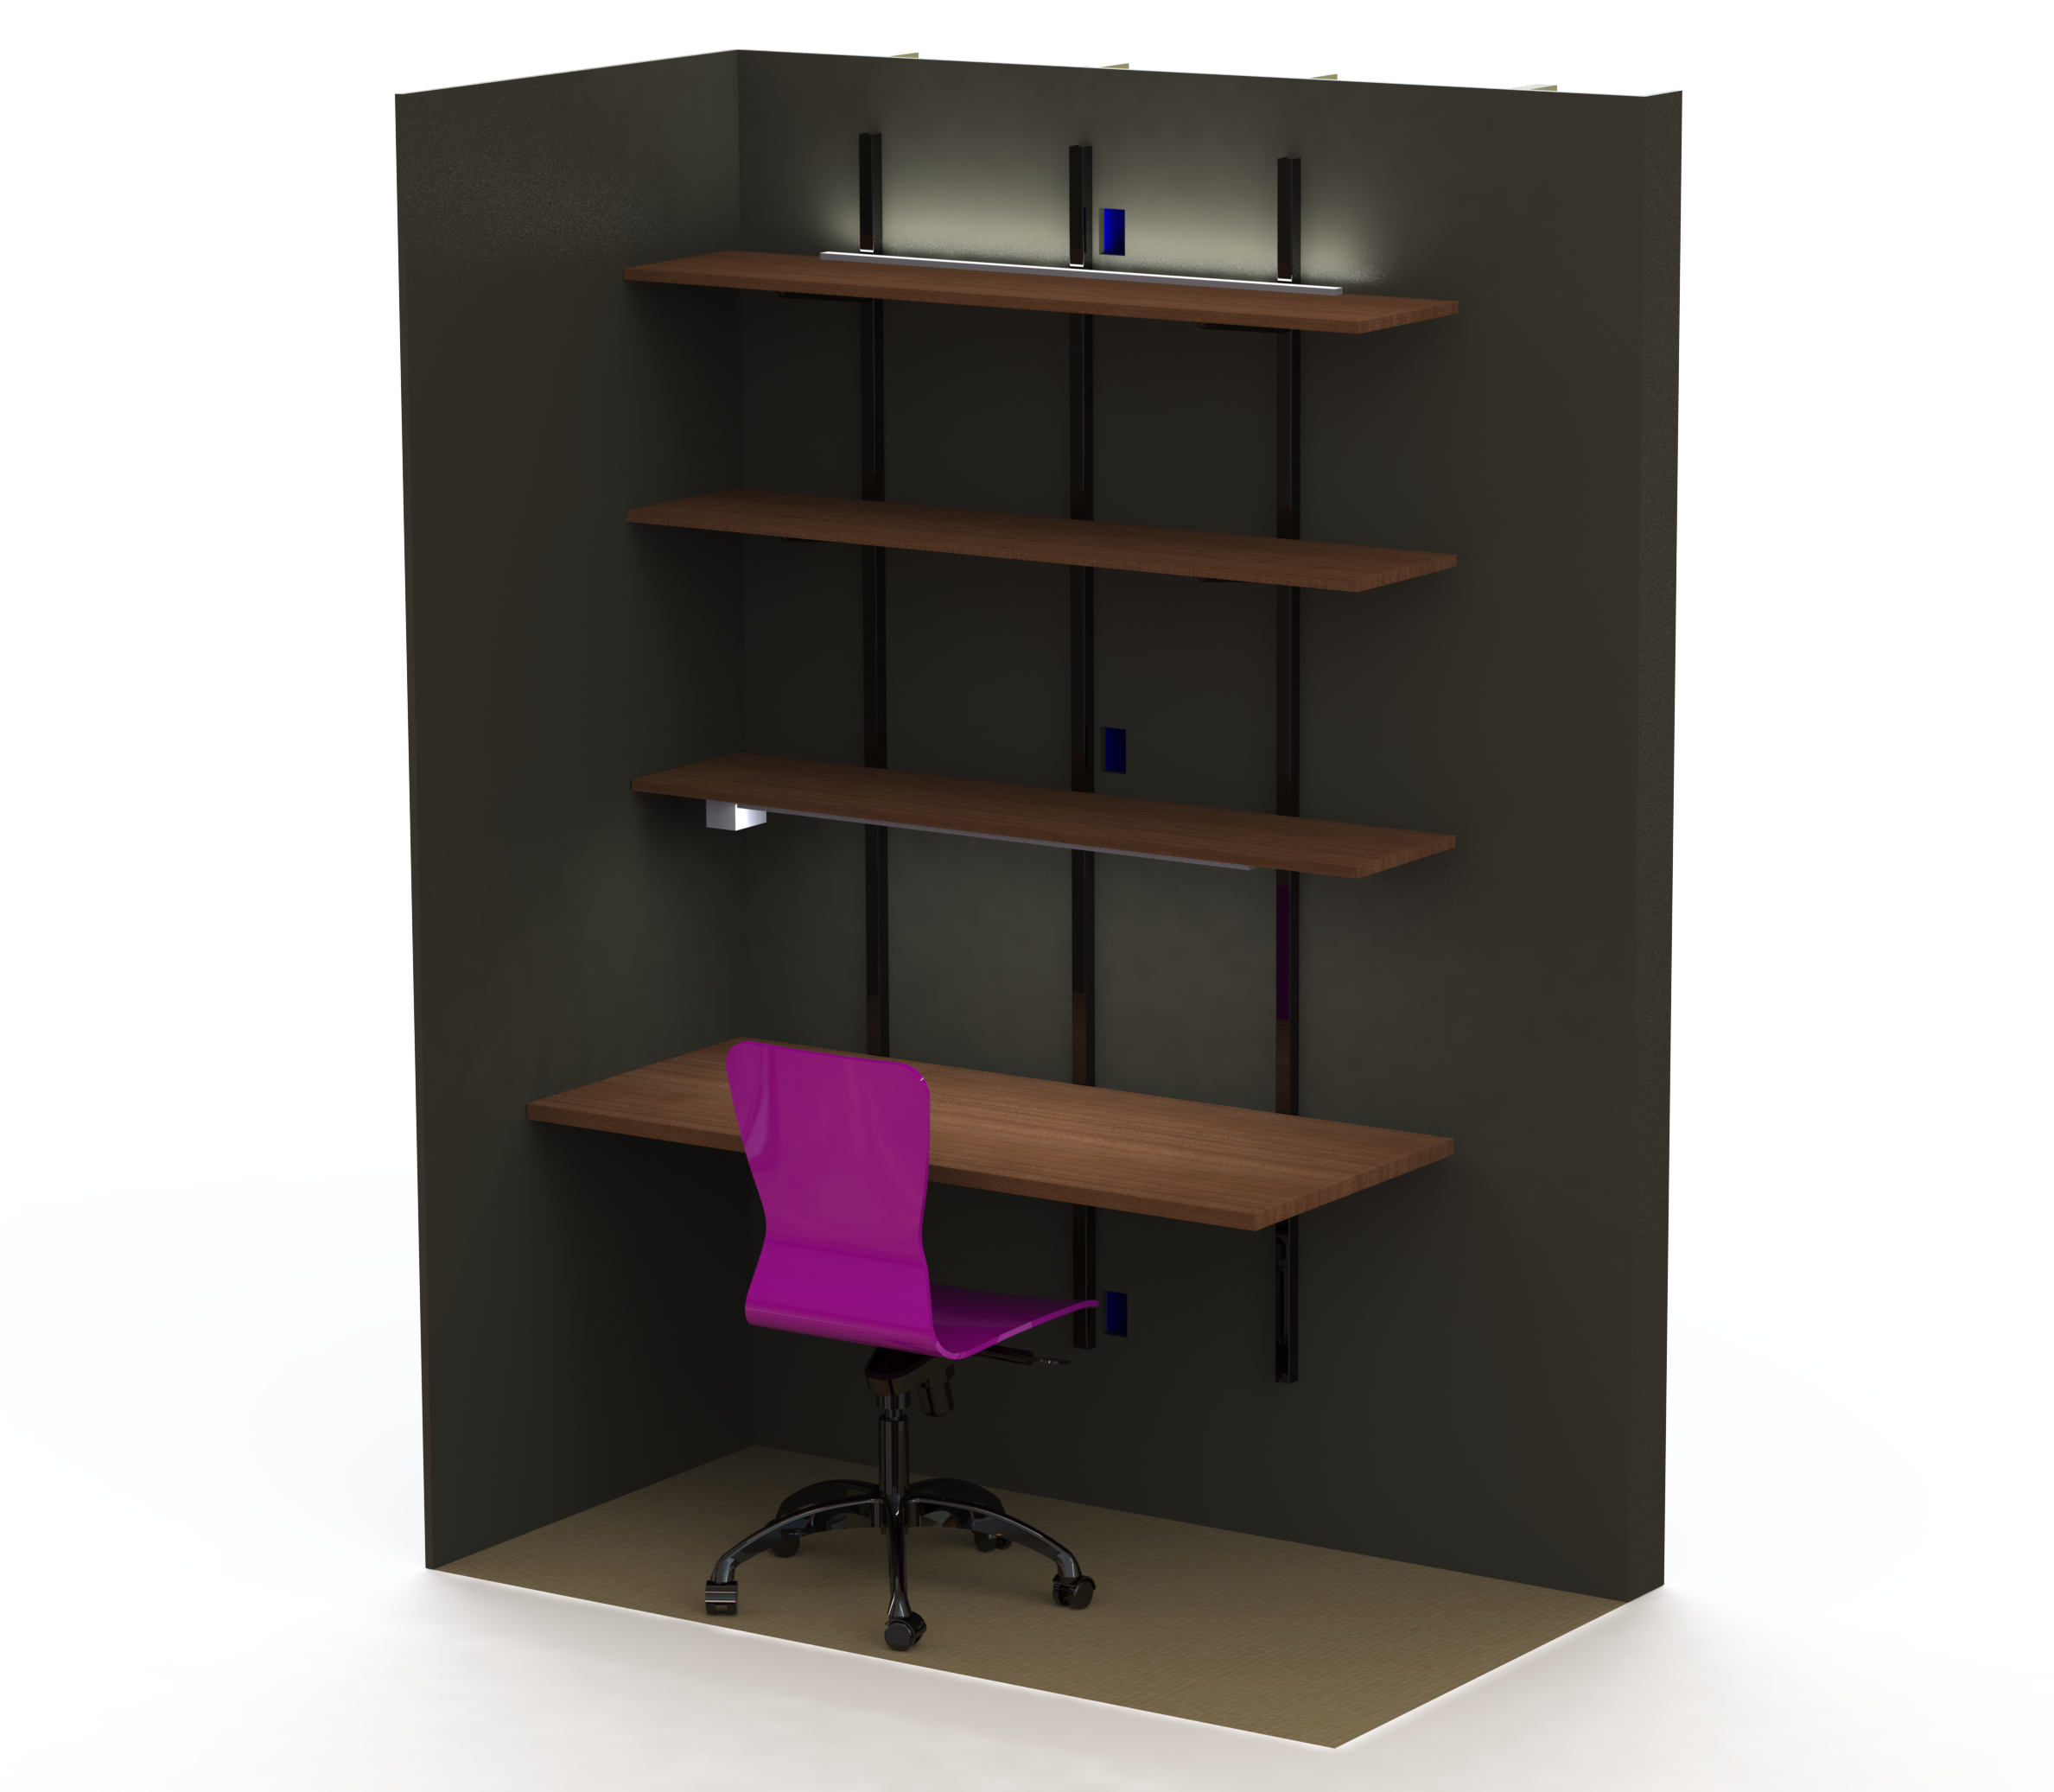 Holly Work Center Model Render With Pv360 Led Effects